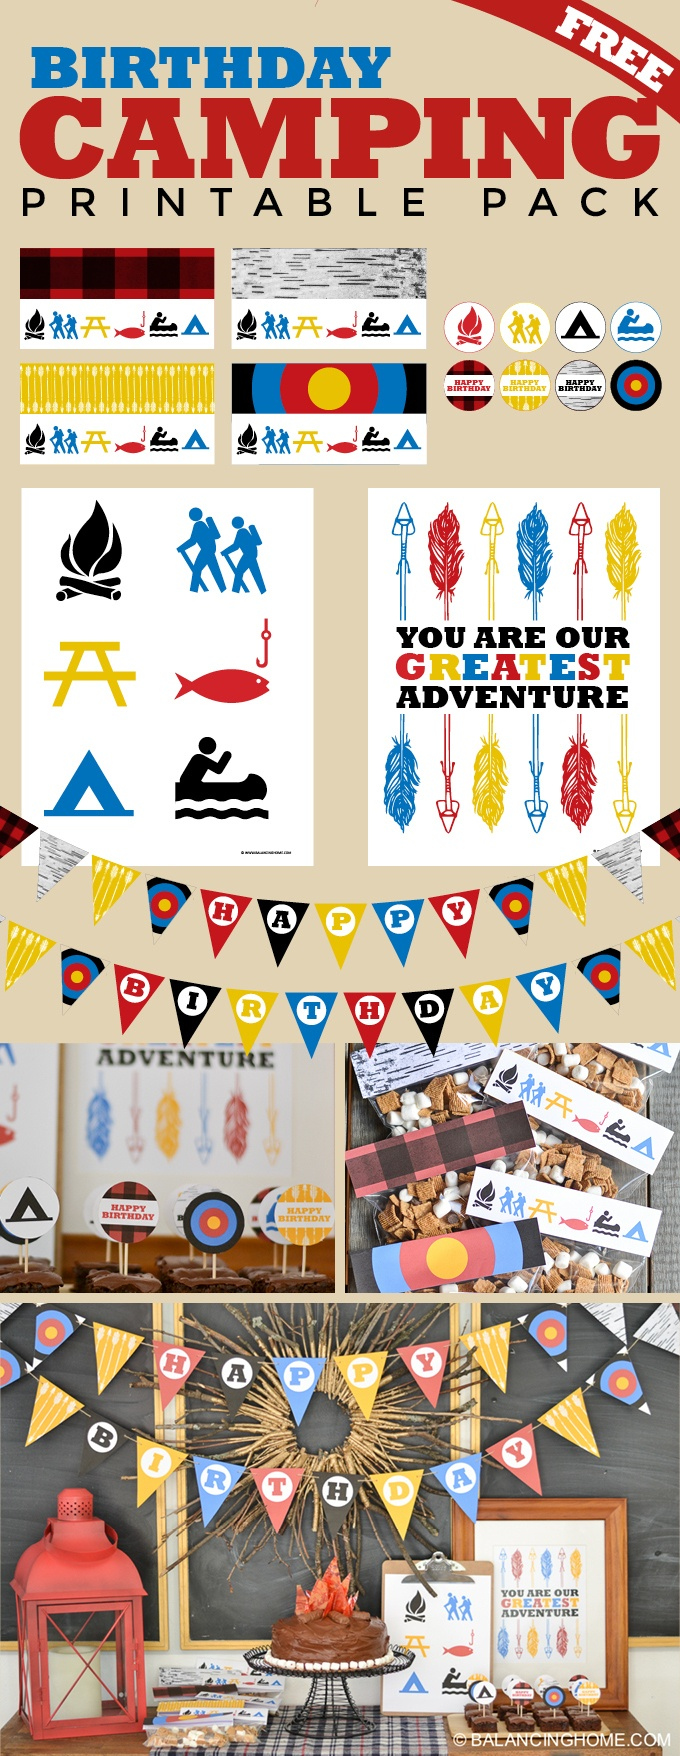 Camping Birthday Party Printables - Balancing Home - Free Camping Party Printables